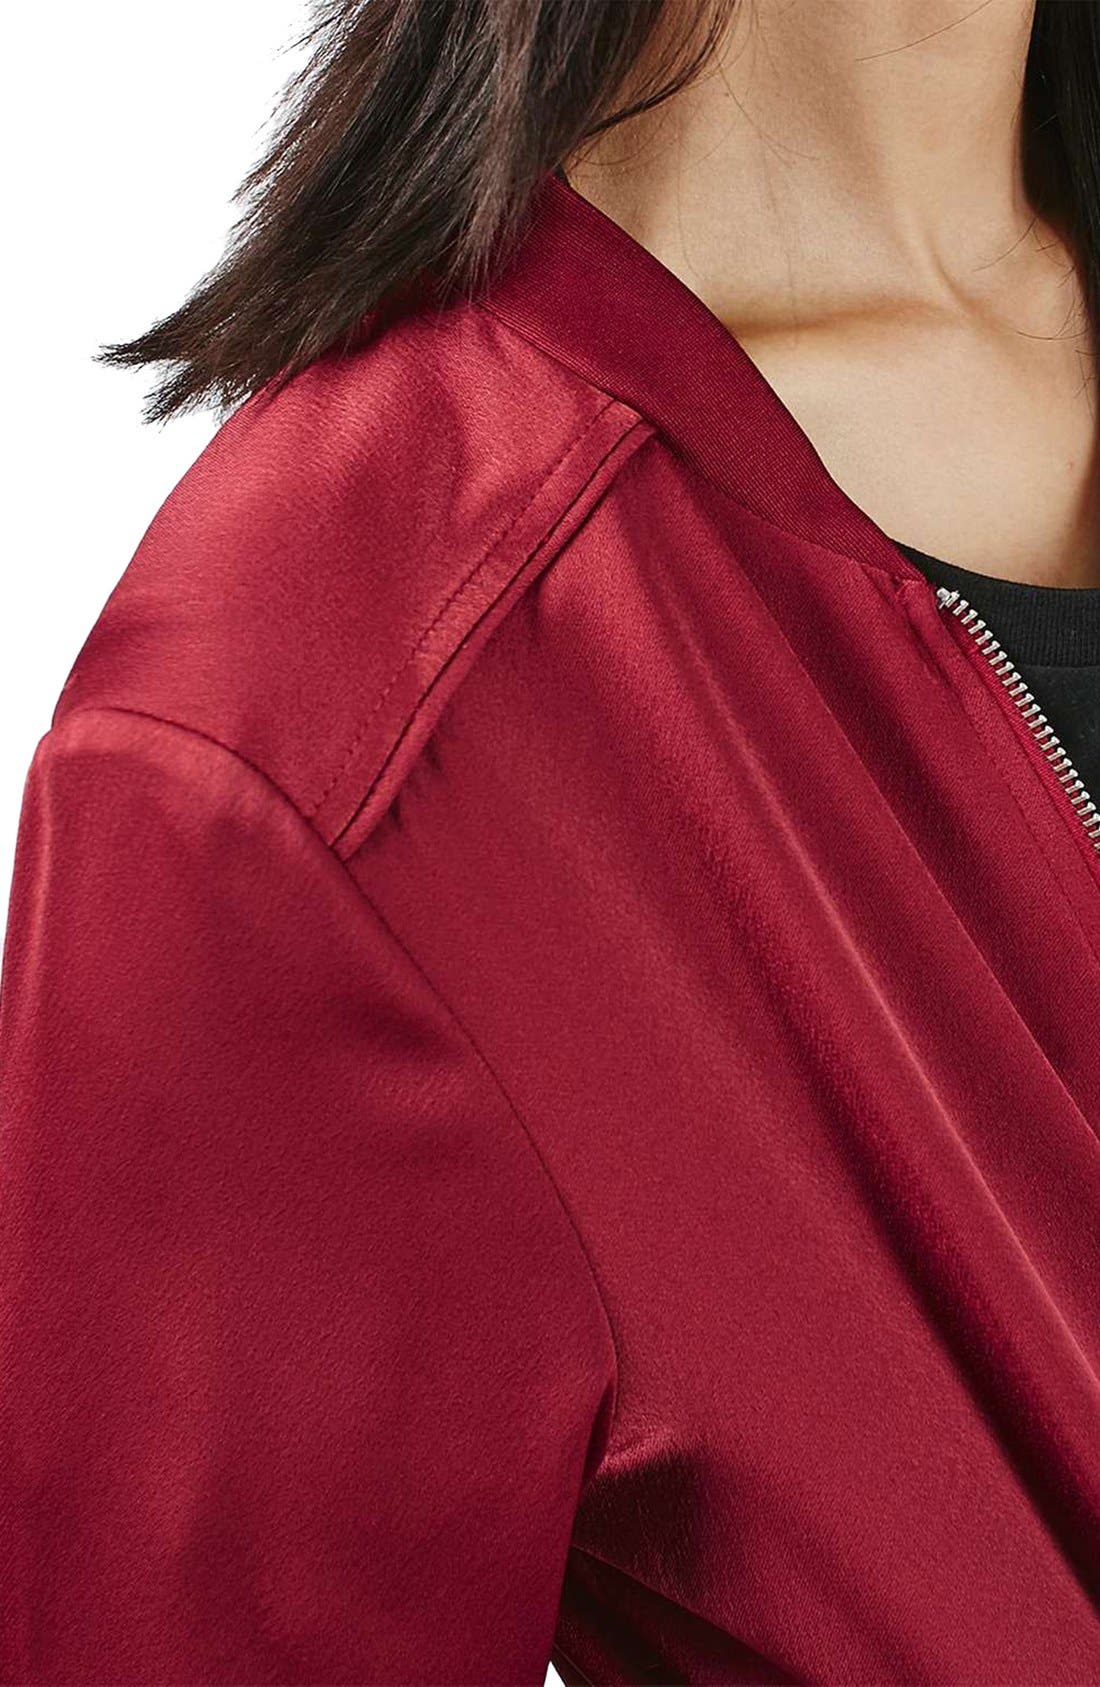 Satin Bomber Jacket,                             Alternate thumbnail 20, color,